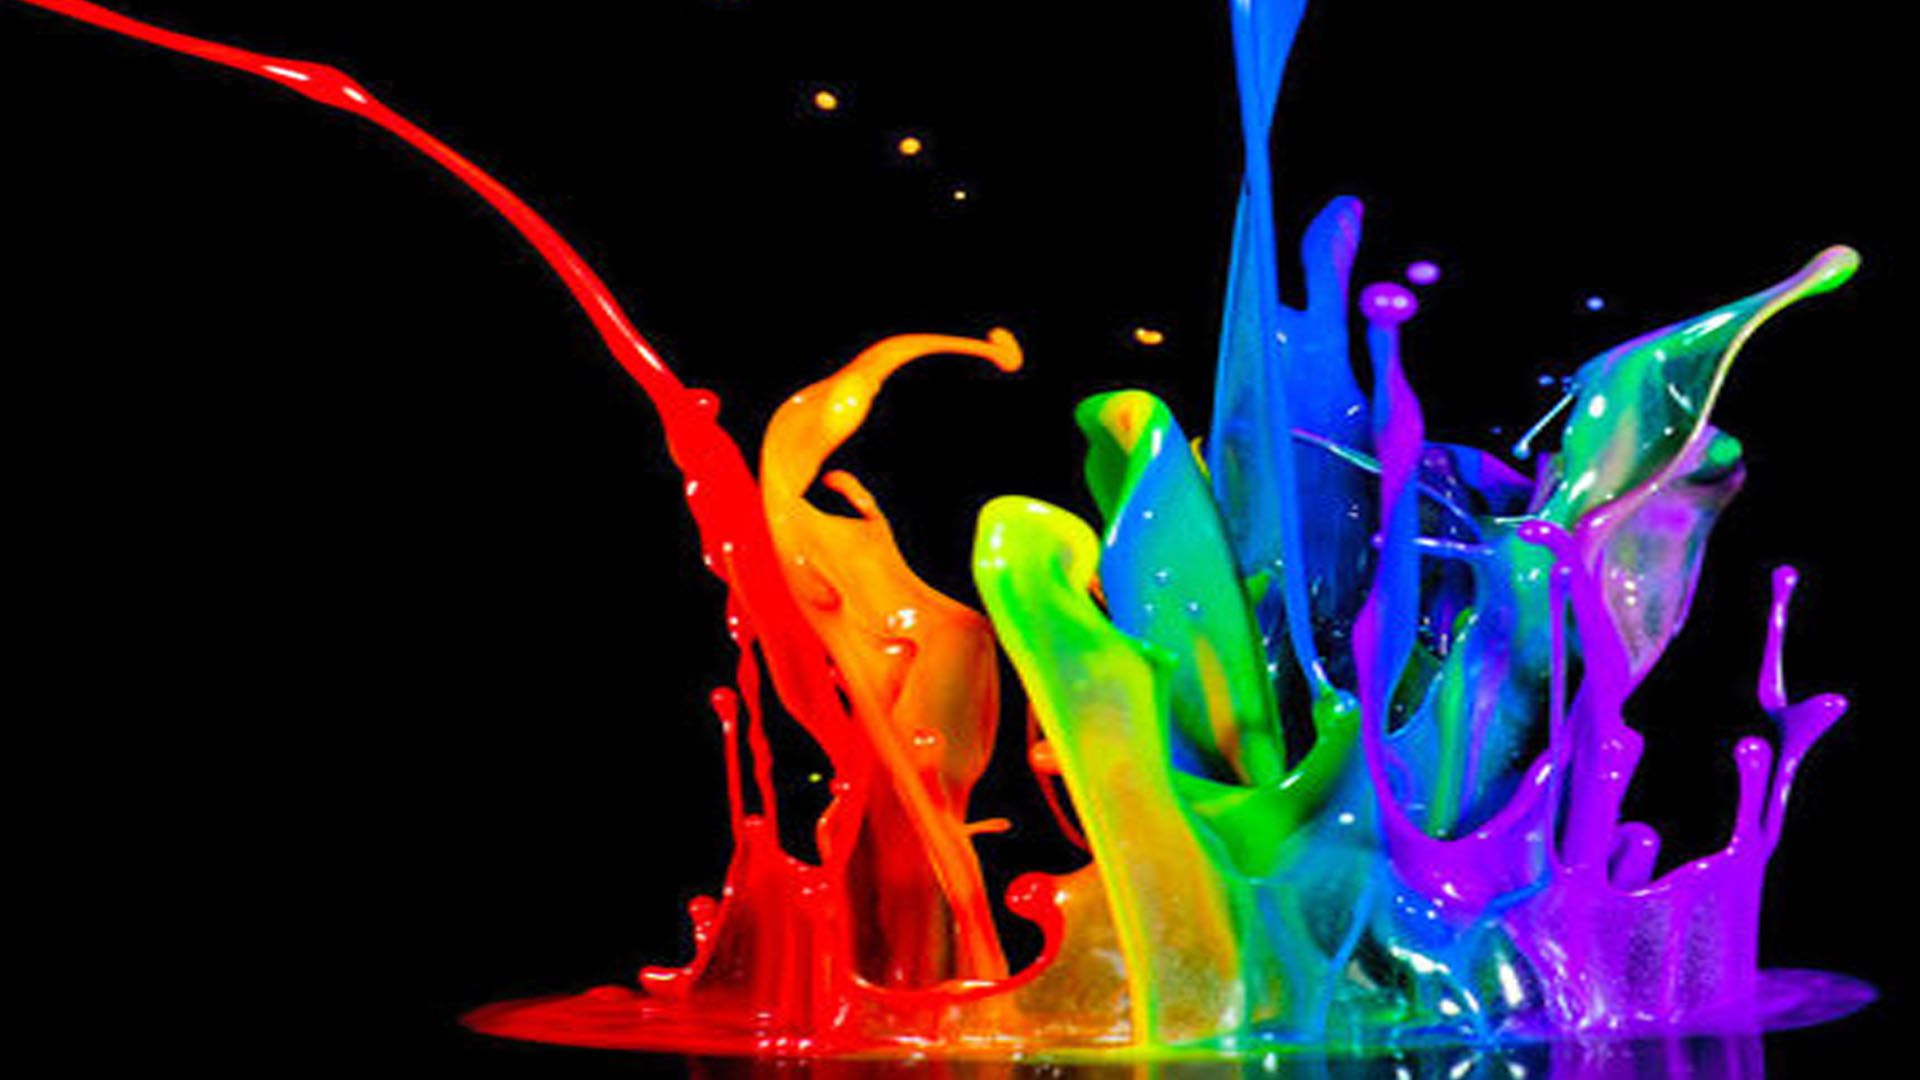 Paint Splash, Colorful Wallpaper